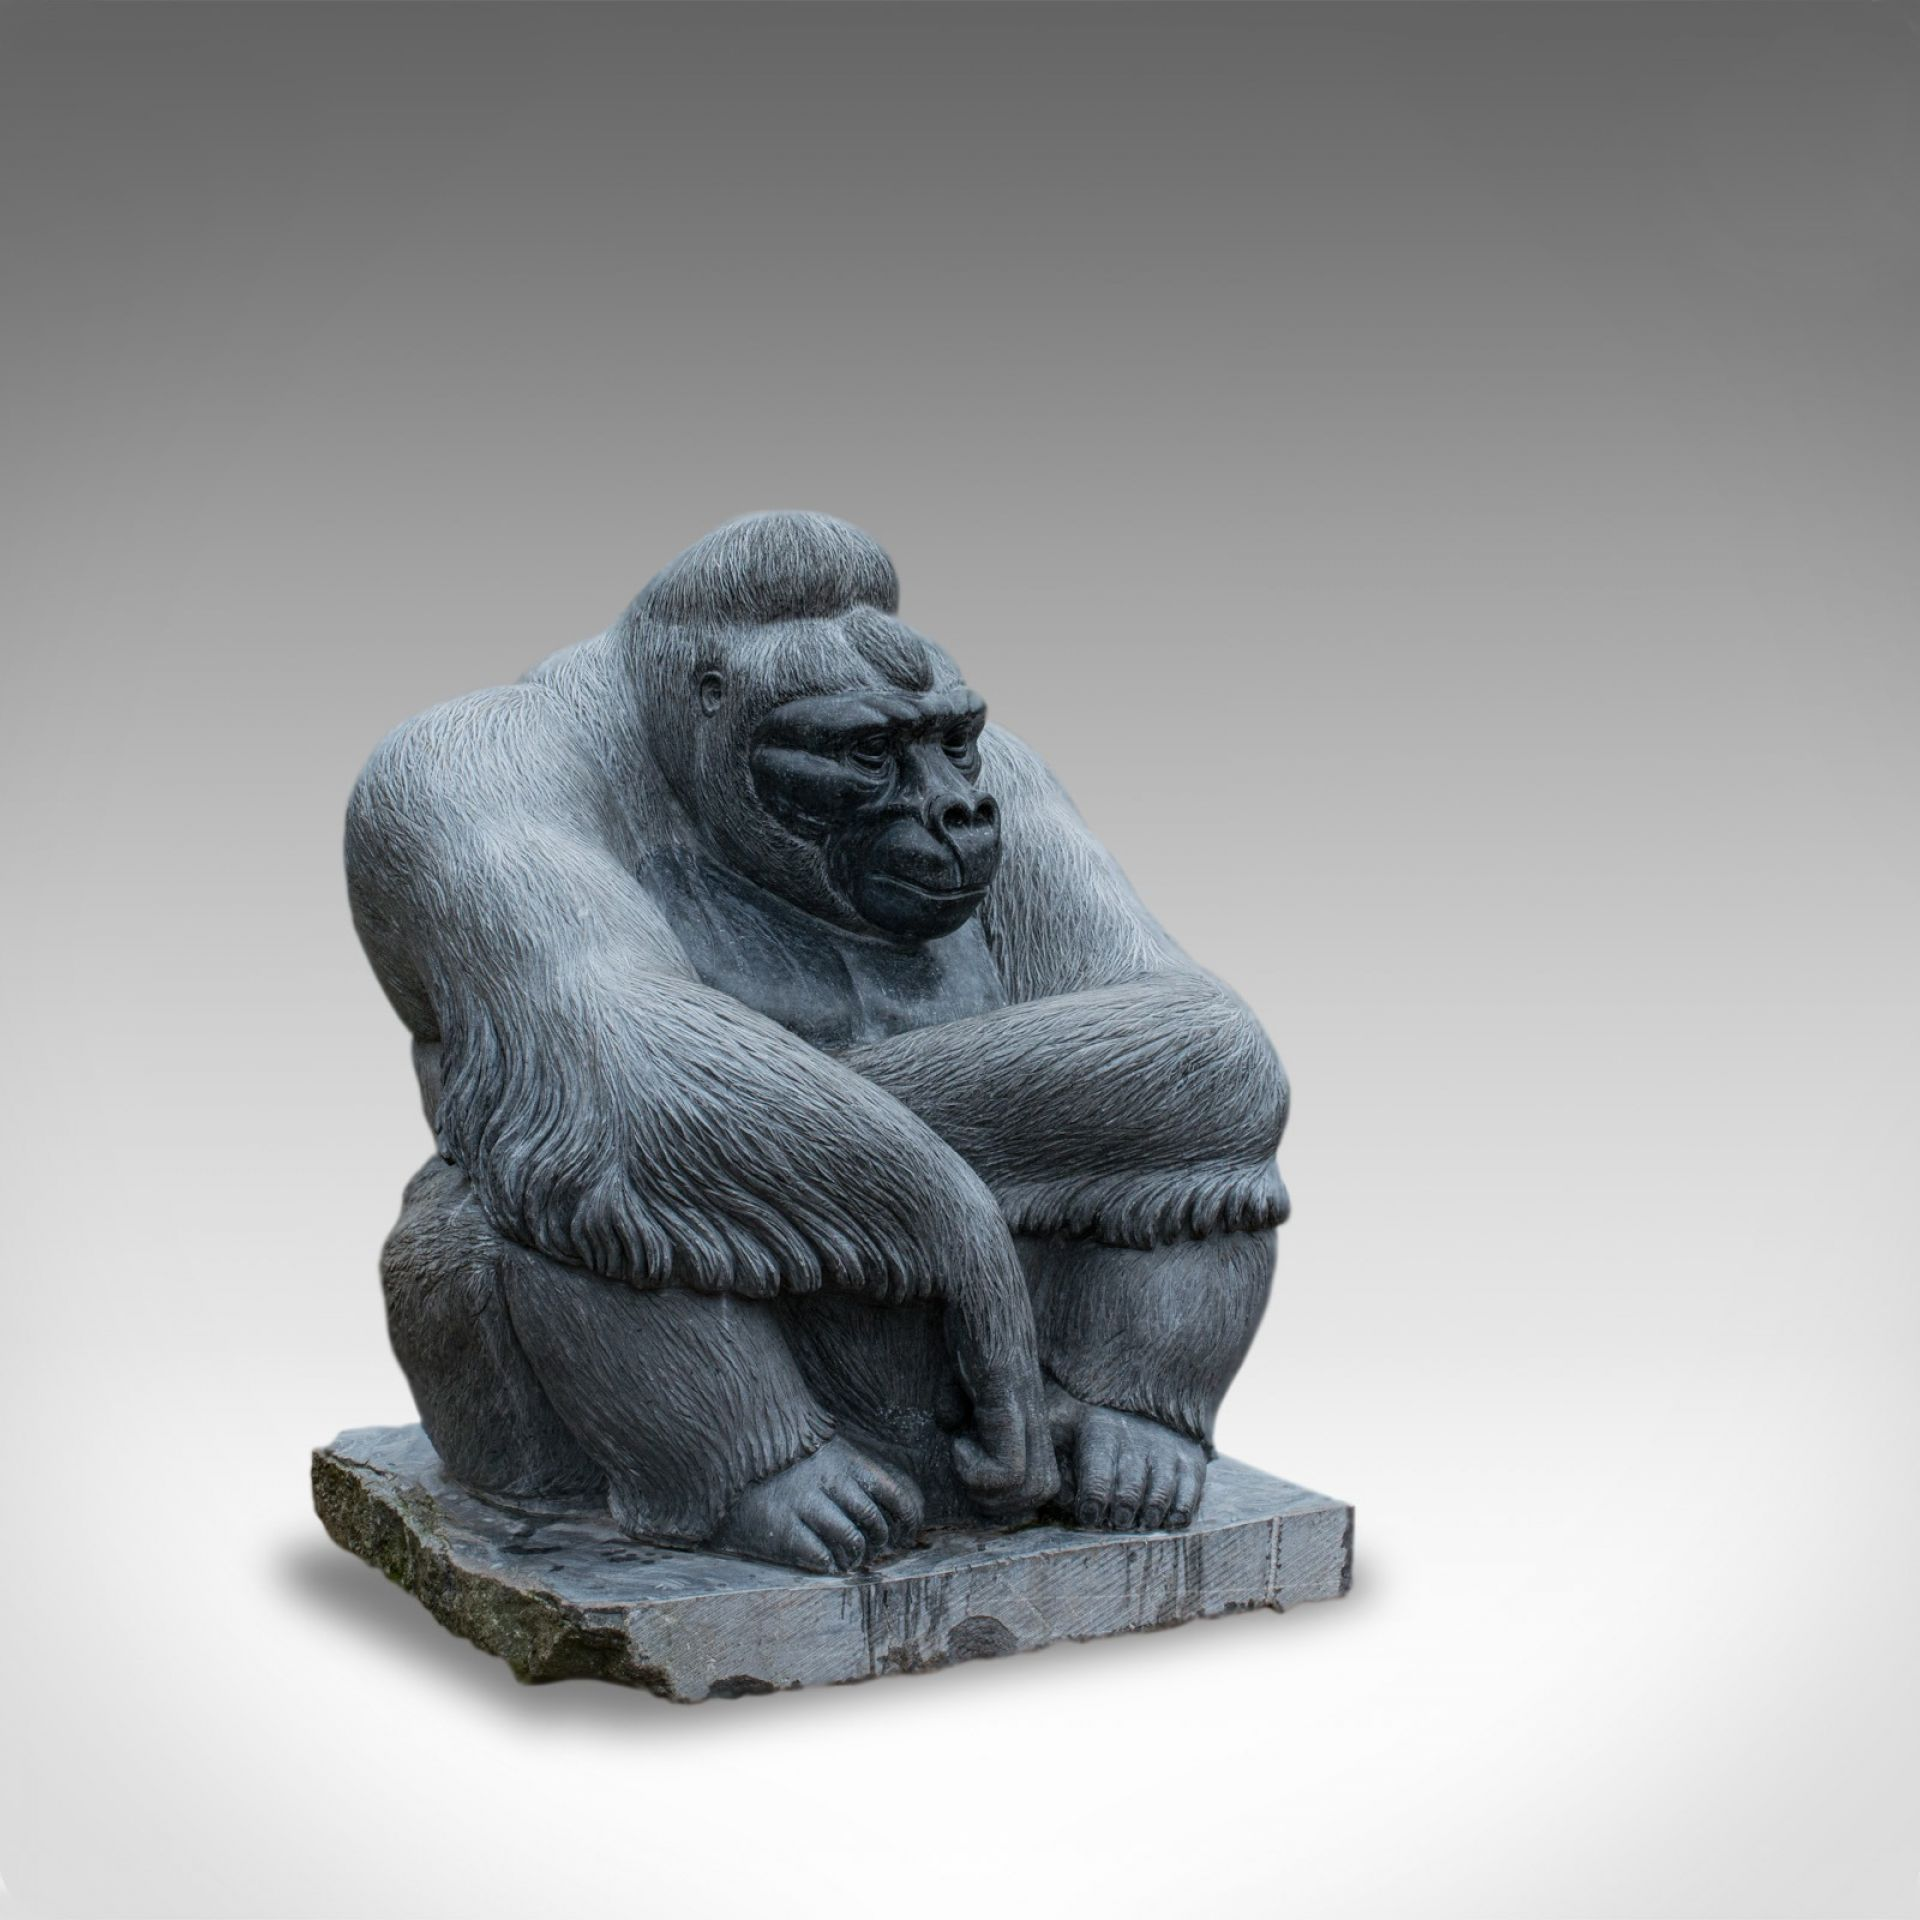 Large Sculptural Artwork Marble Statue Shabani Lowland Gorilla by Dominic Hurley